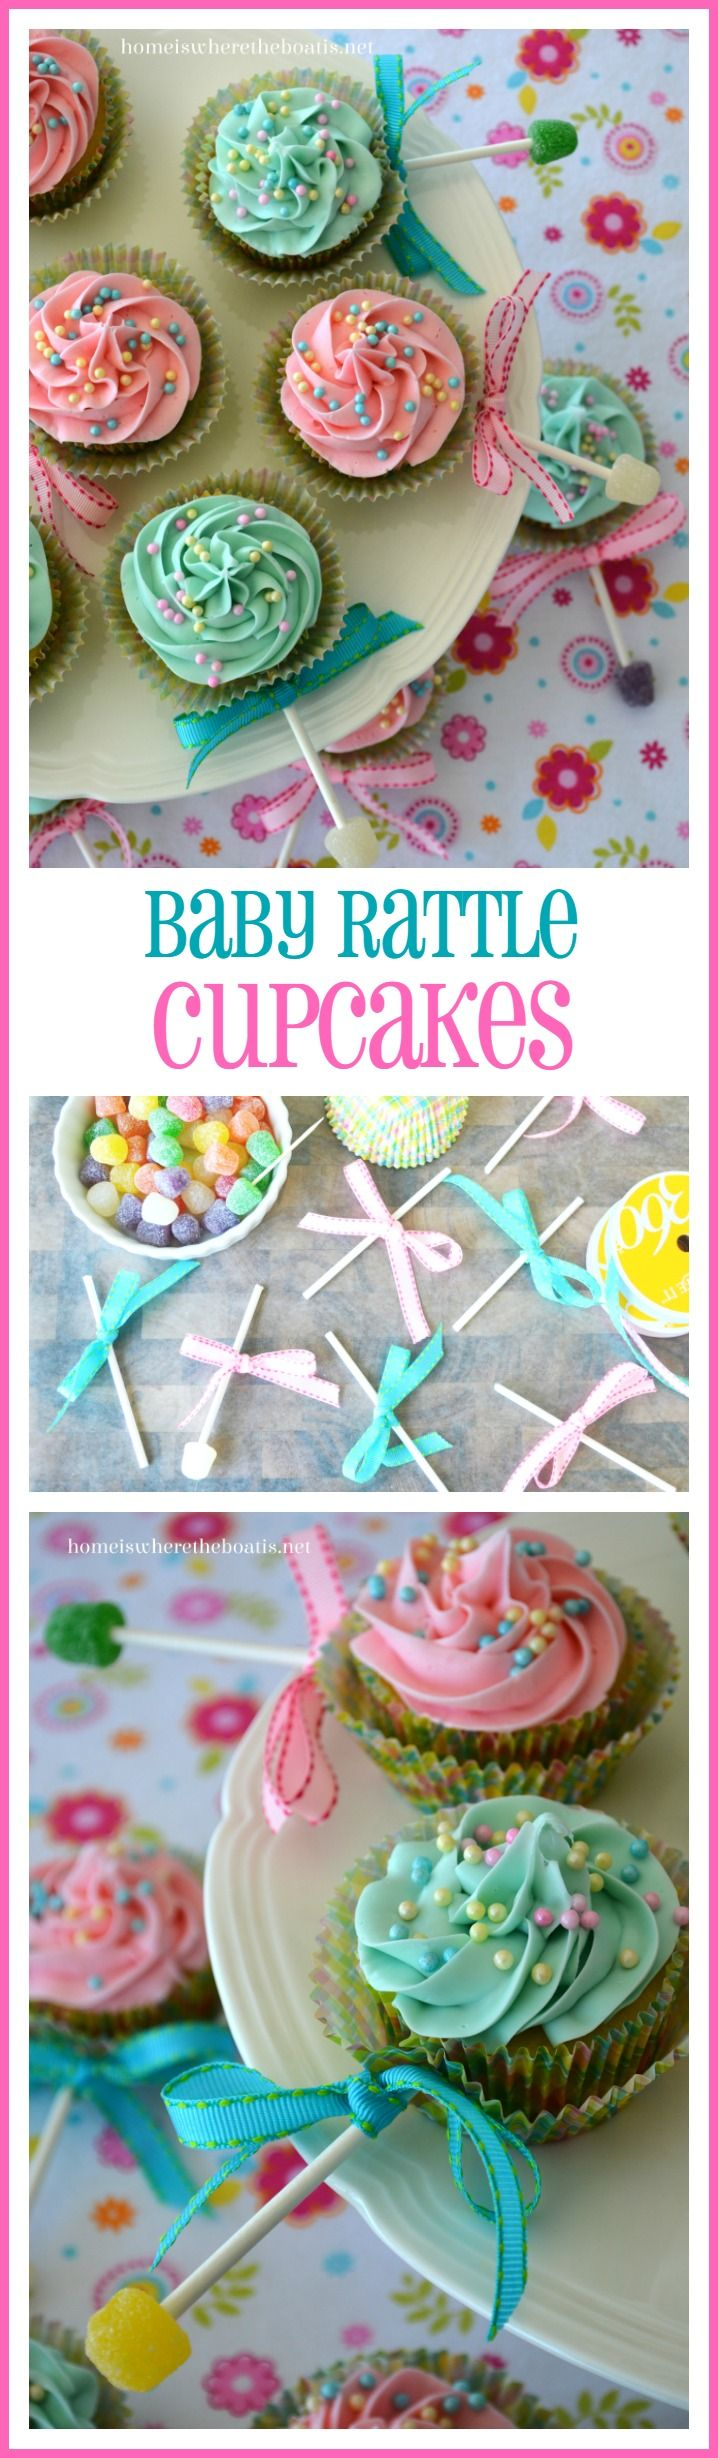 Baby Rattle Cupcakes! An easy and sweet ending for a baby shower! | homeiswheretheboatis.net